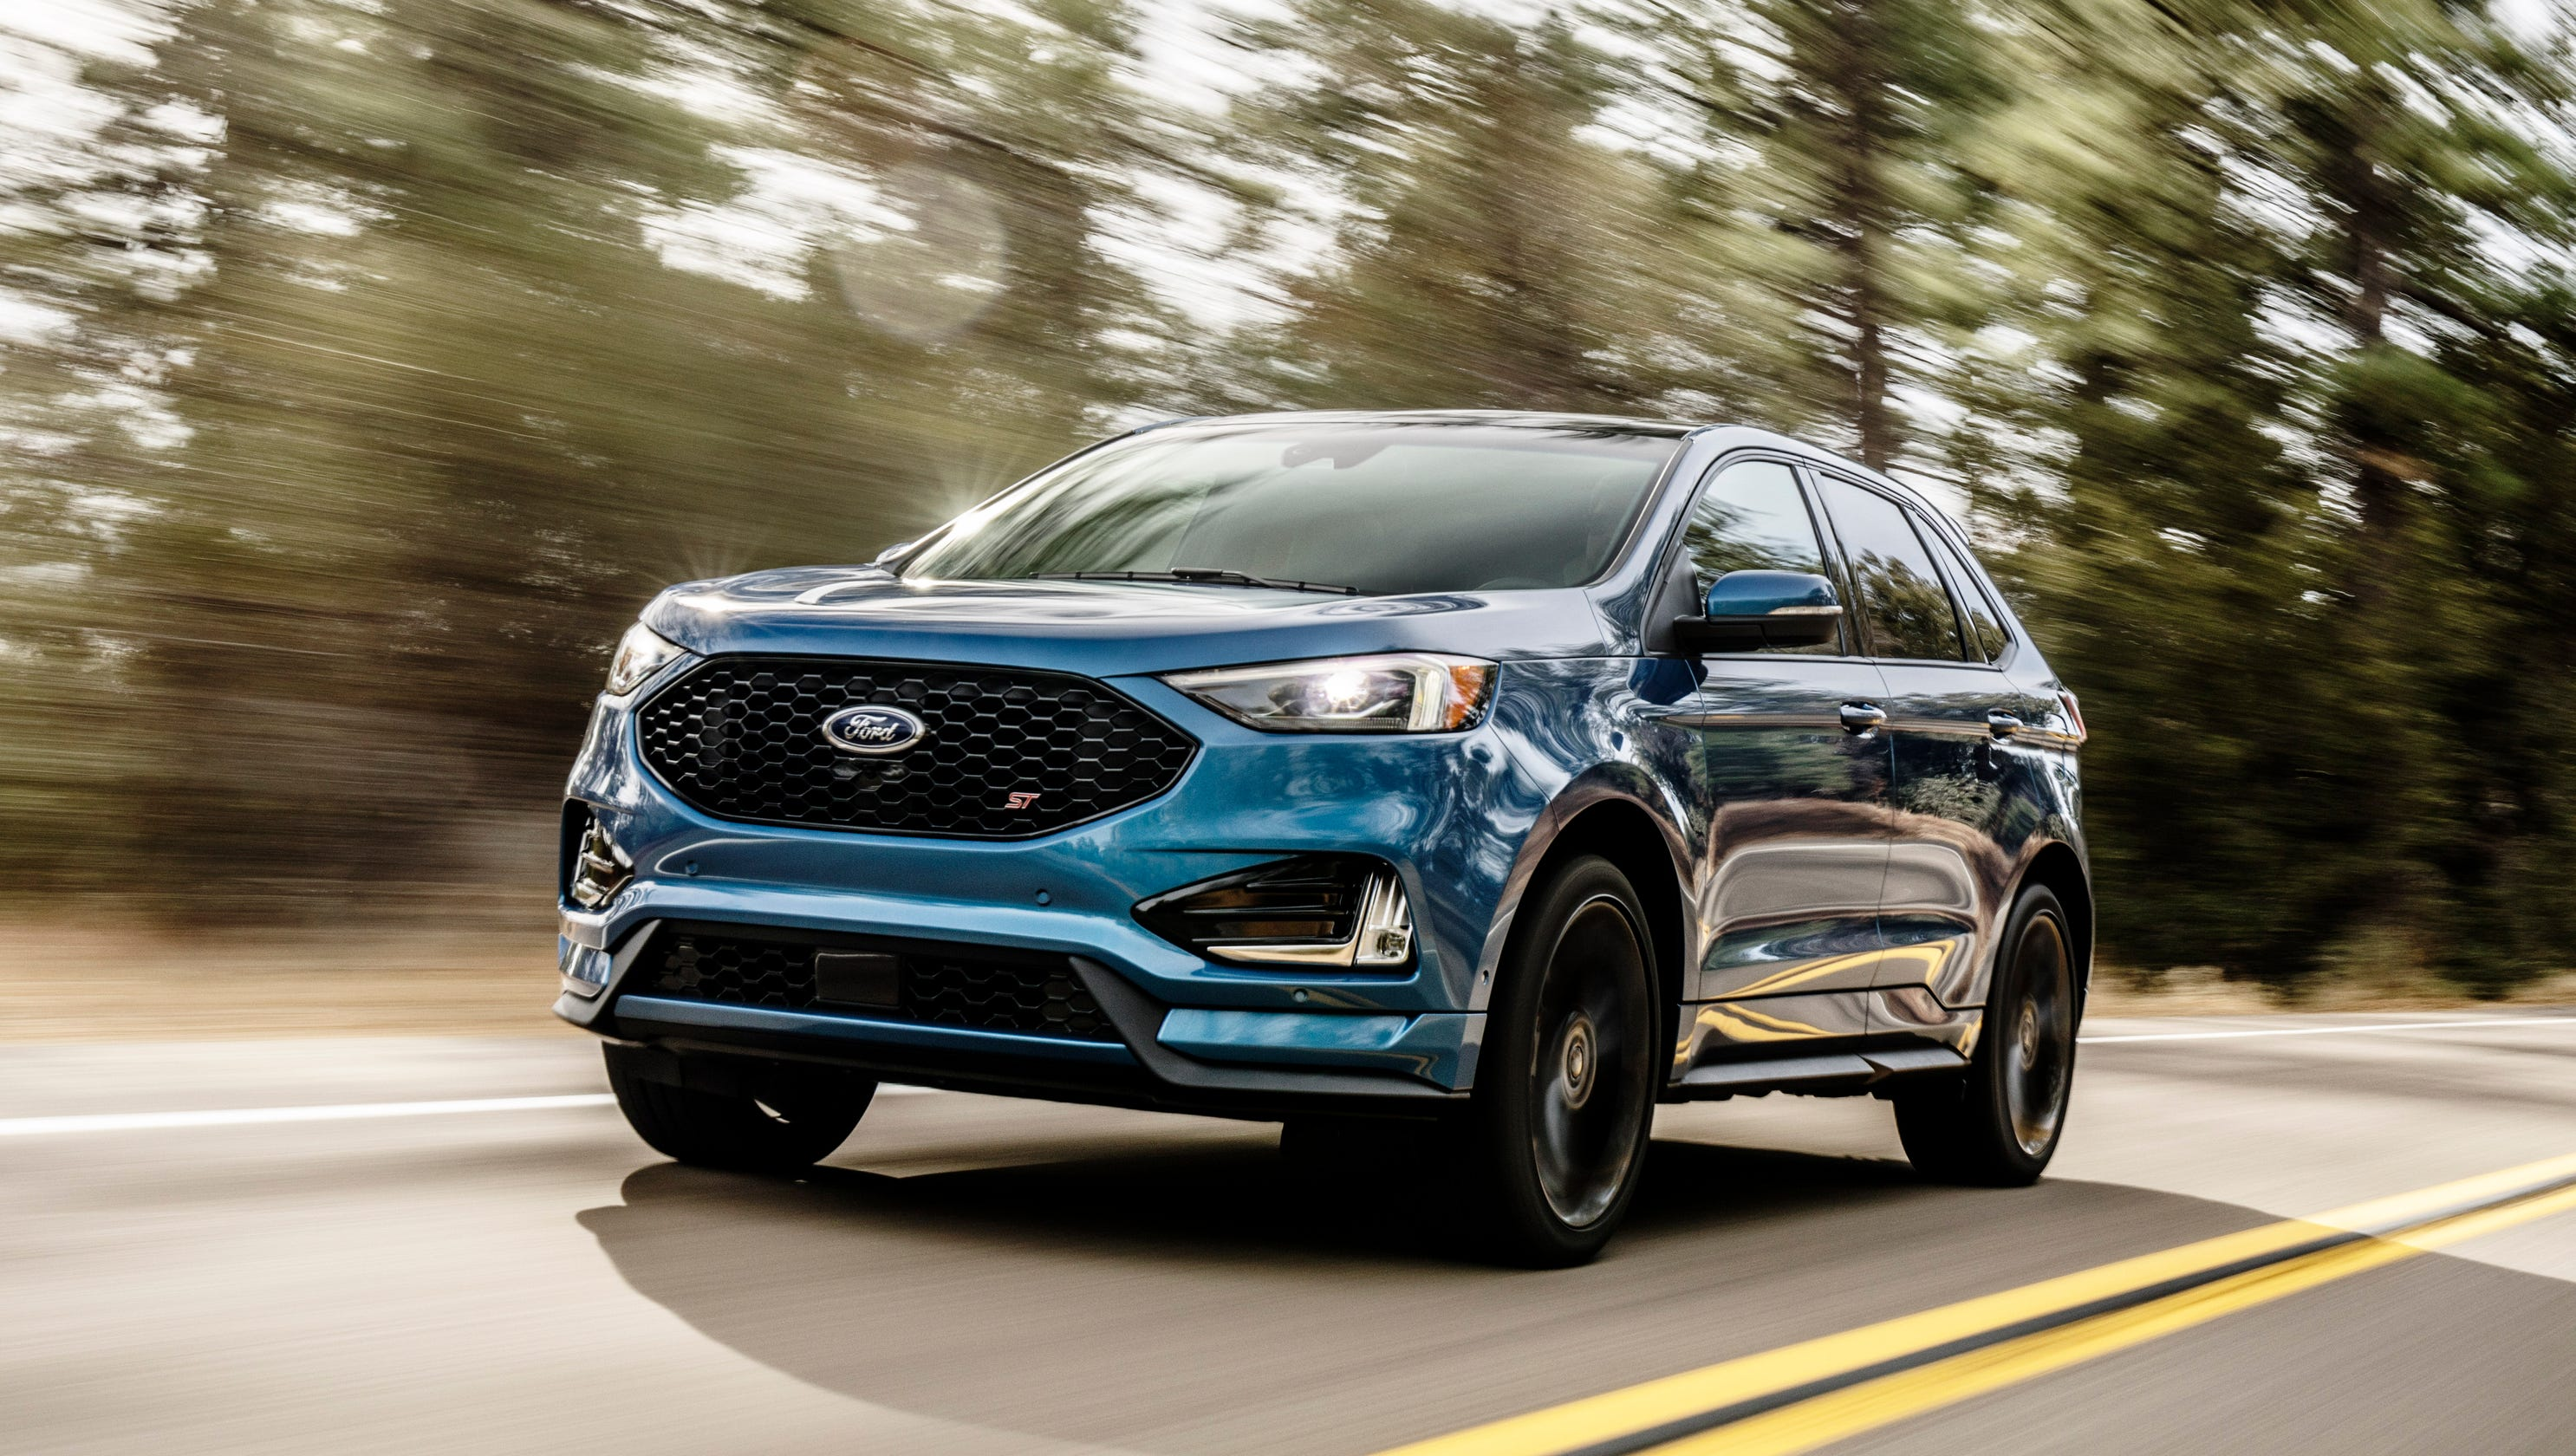 Ford Edge Towing Capacity >> 2019 Ford Edge St Review Suv Is Fast And Fun Until You Hit